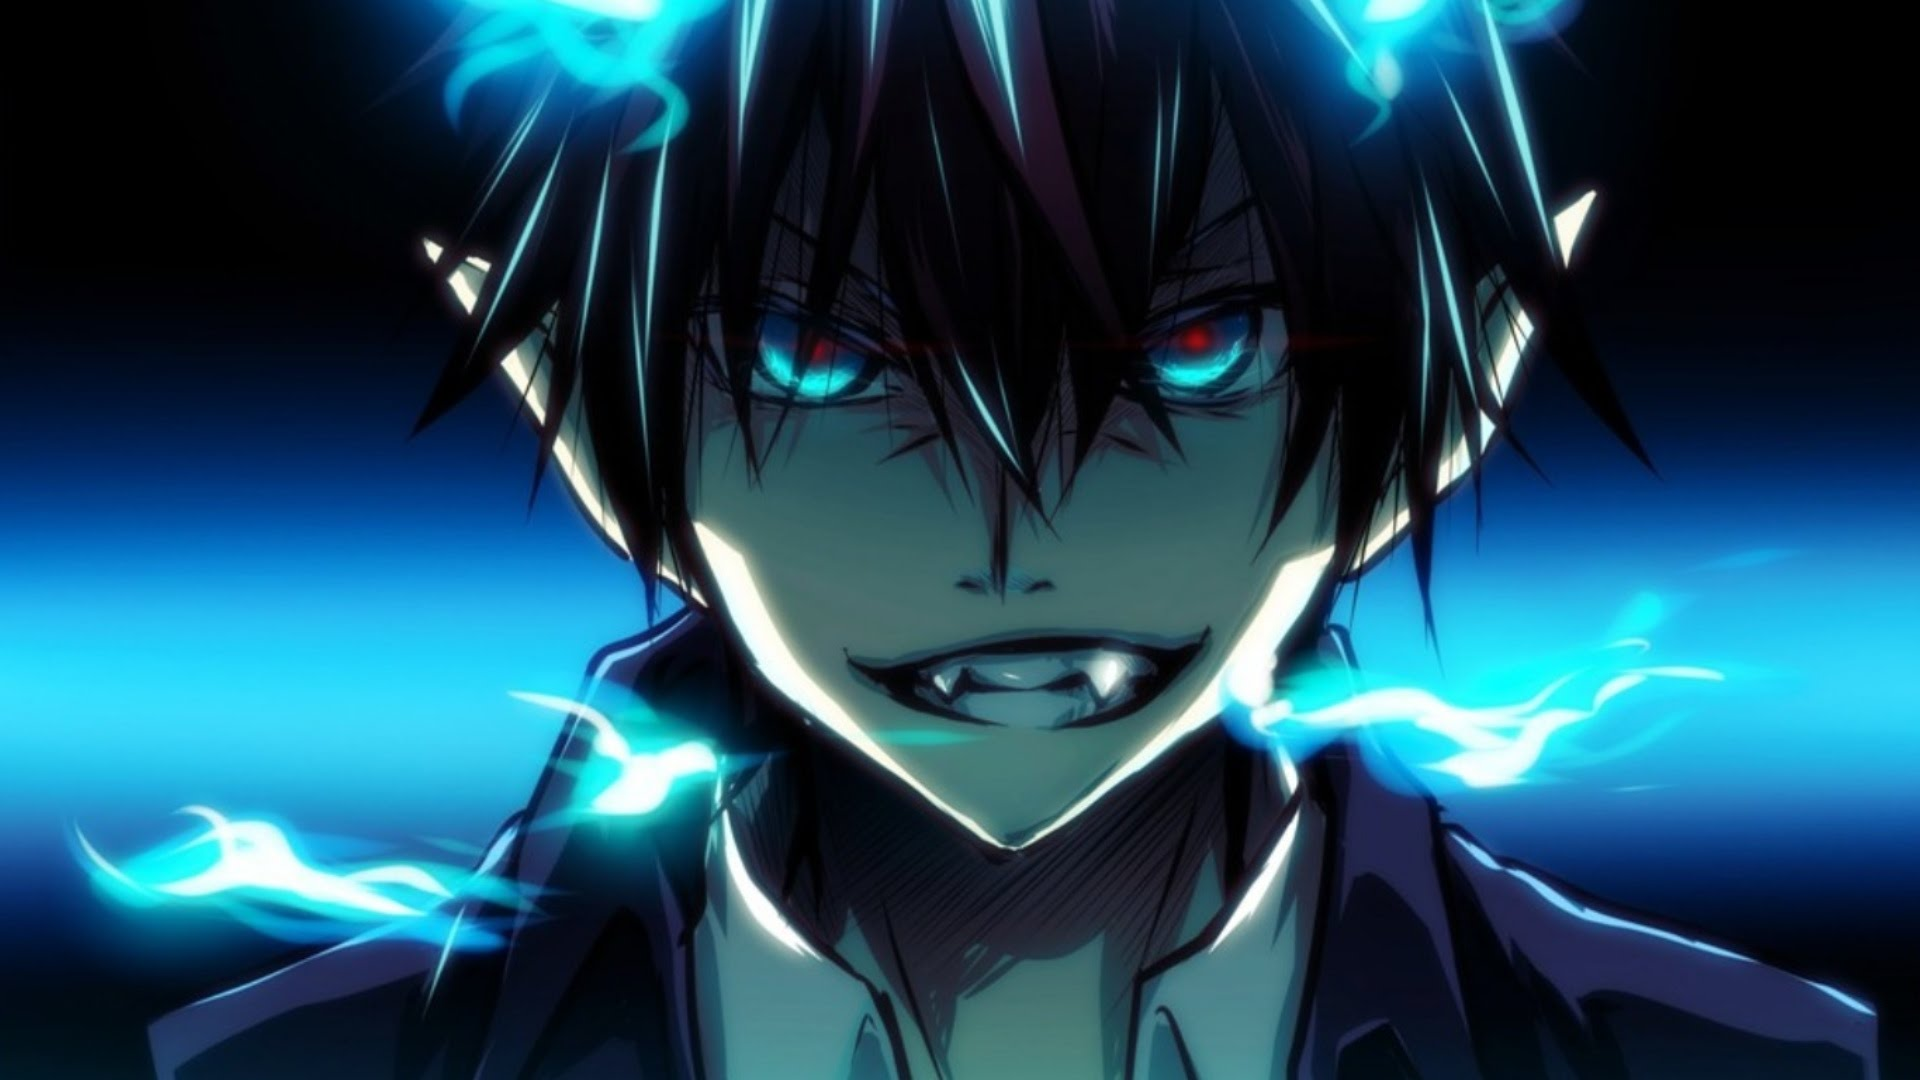 Blue Exorcist Wallpapers Anime Hq Blue Exorcist Pictures 4k